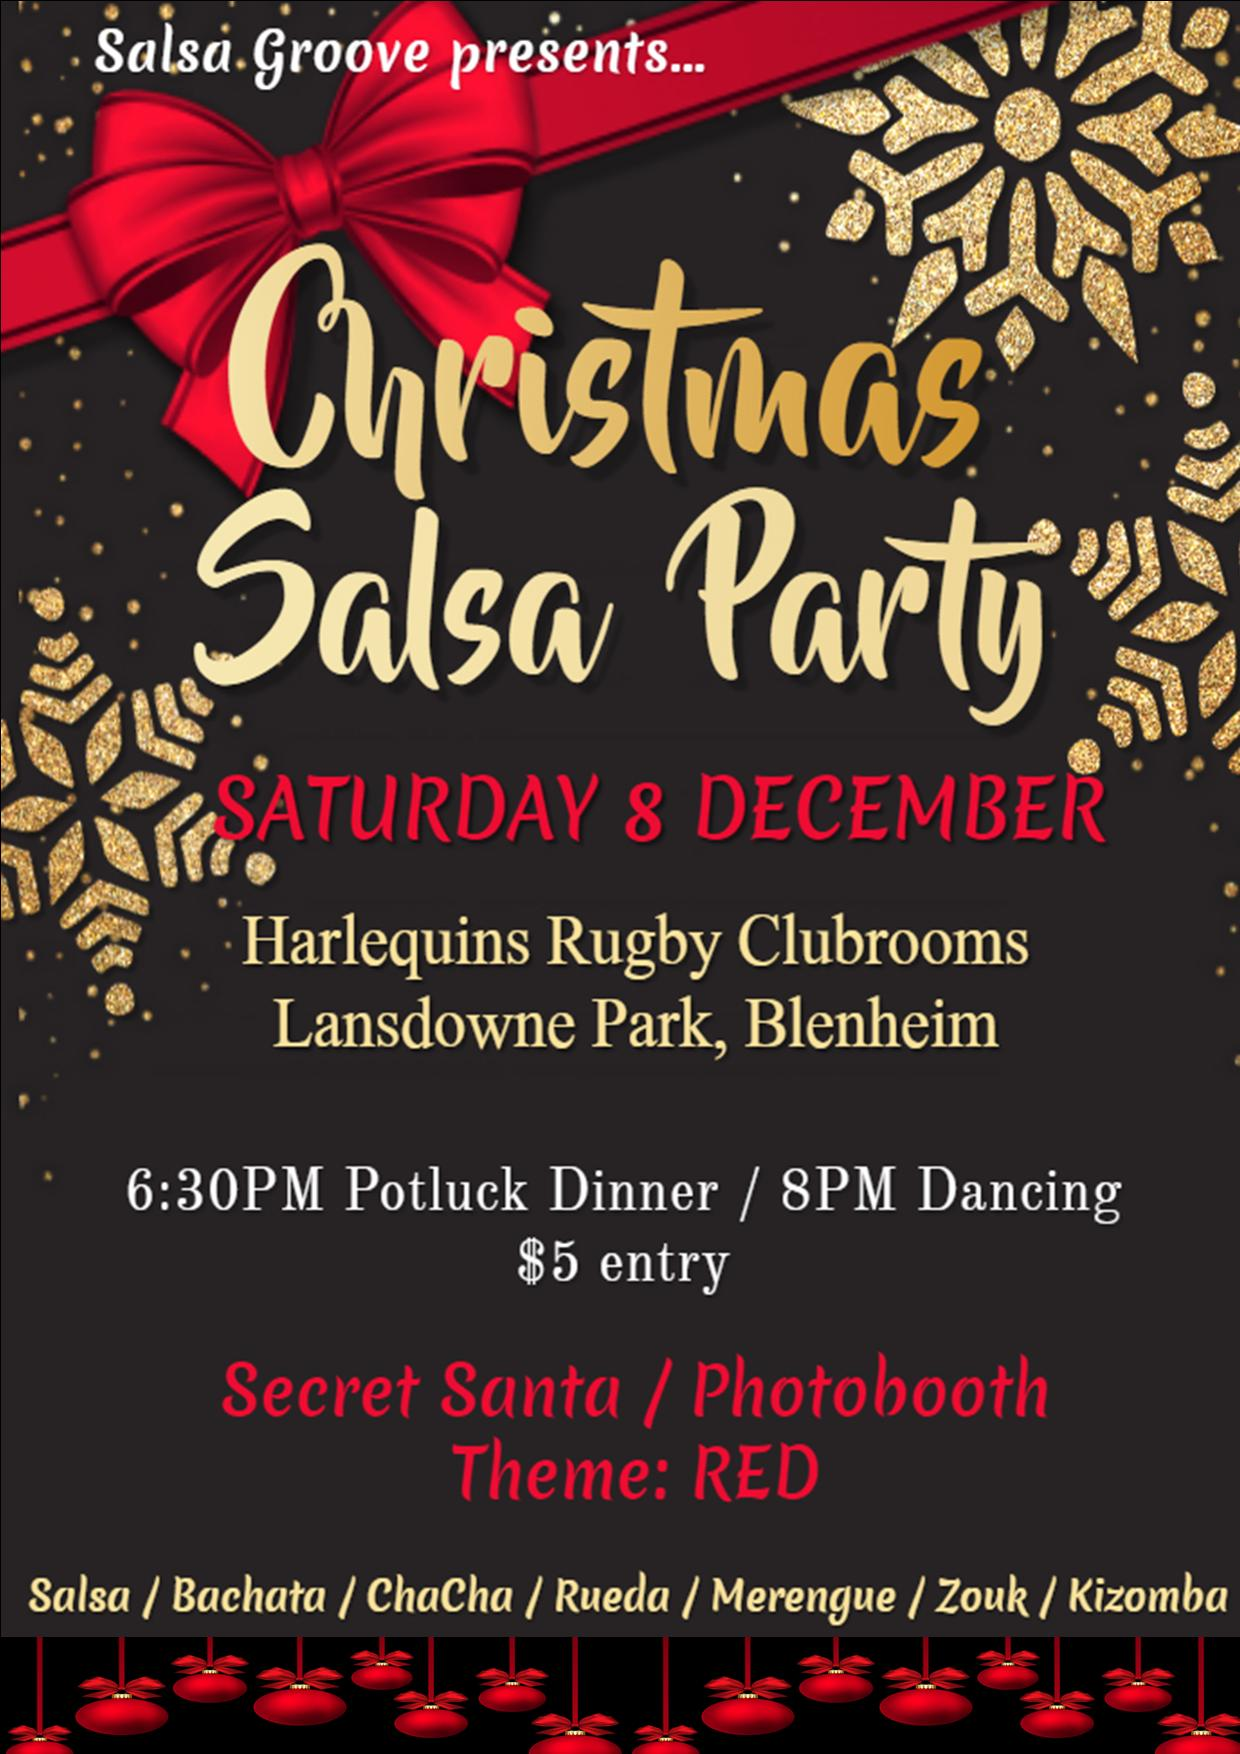 MASTER Christmas party flyer.jpg